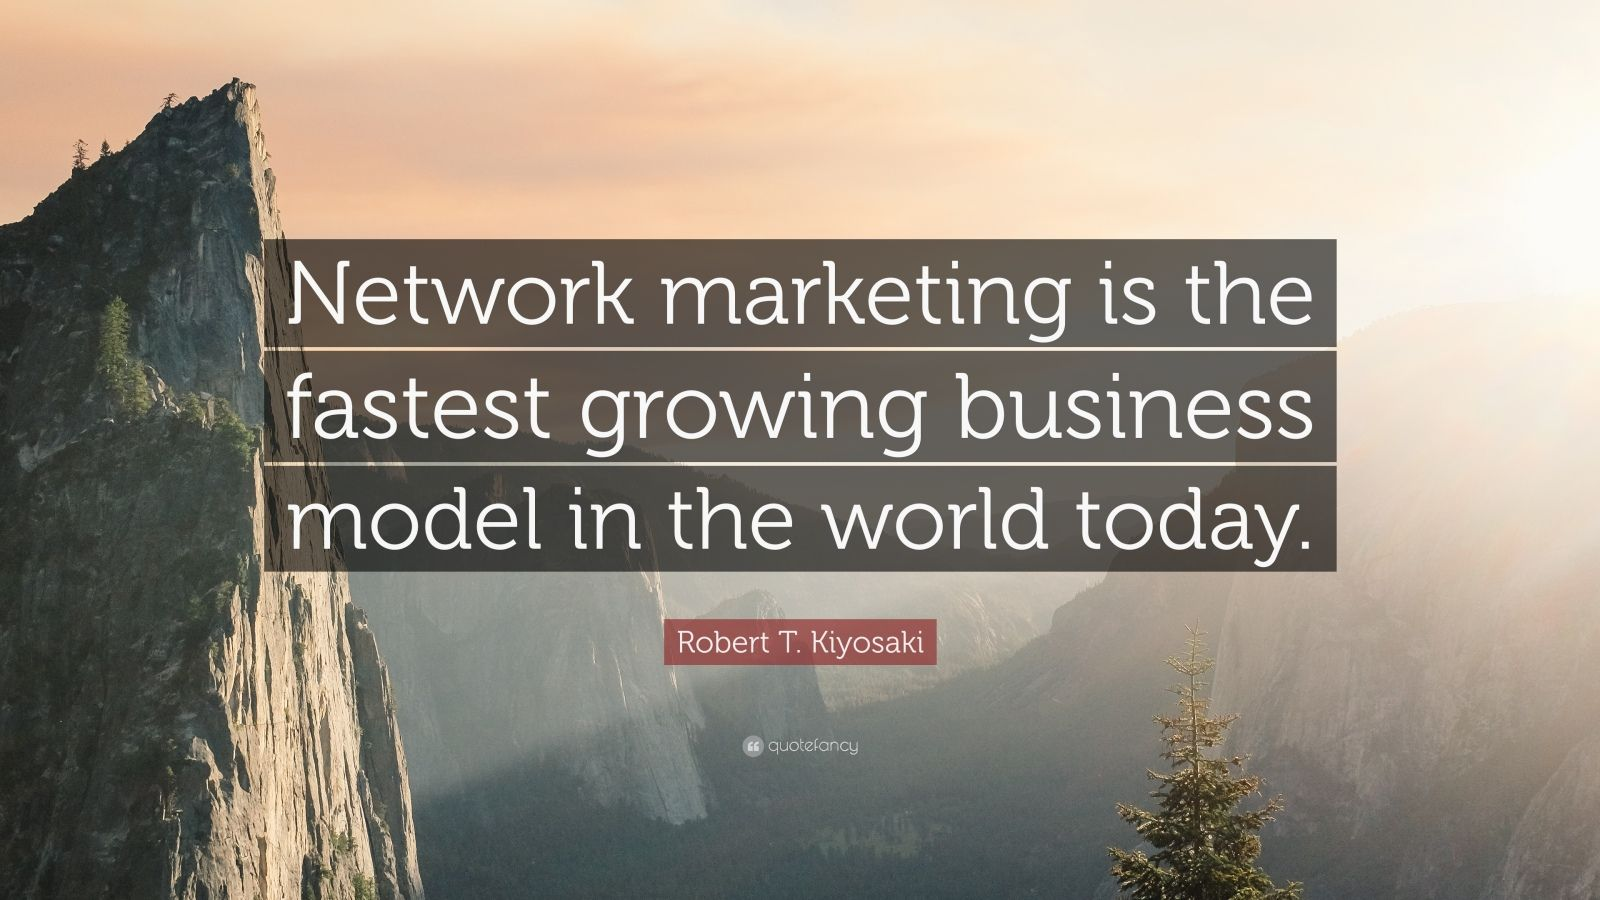 Business Inspirational Quotes Wallpaper Download Robert T Kiyosaki Quote Network Marketing Is The